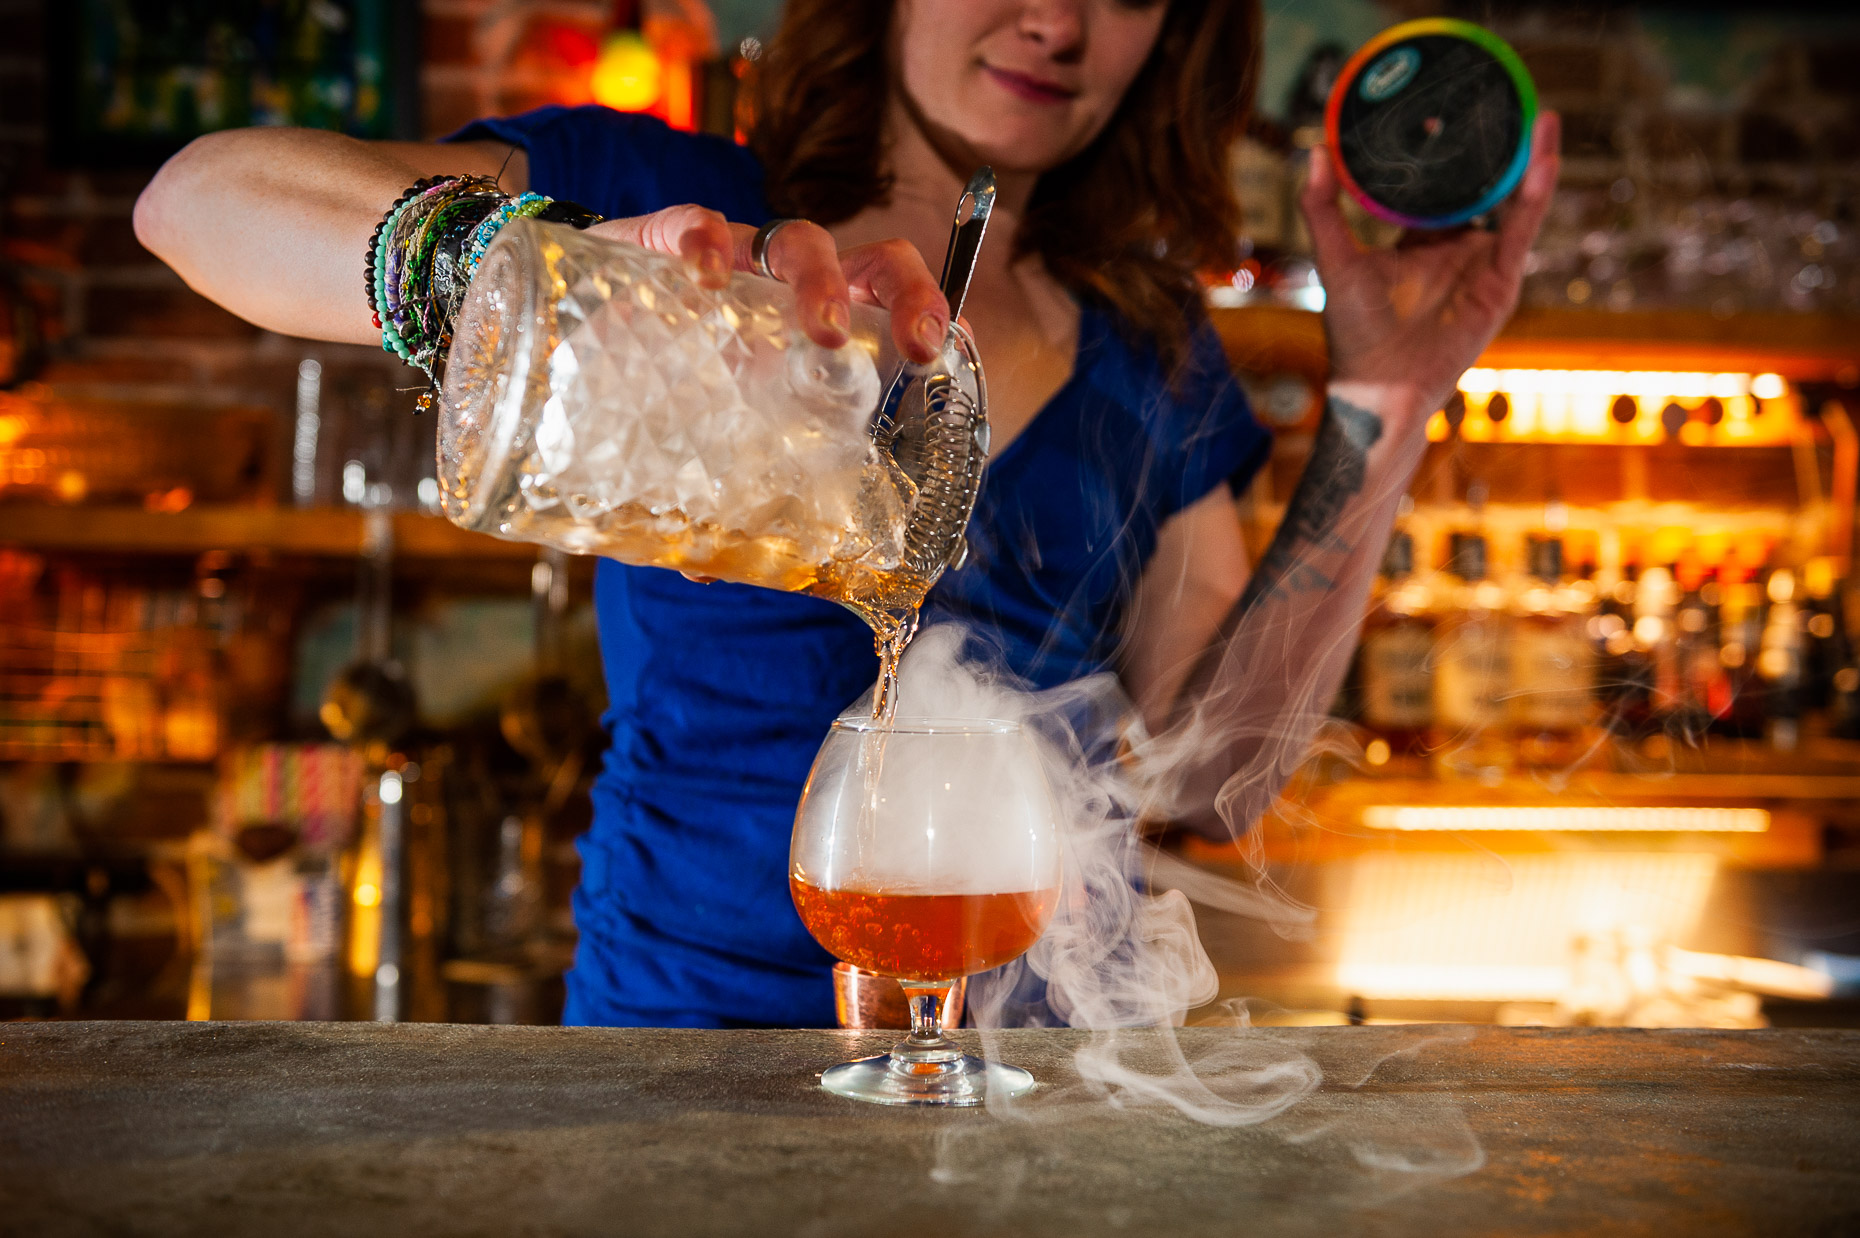 aaron-ingrao-keepers-of-the-craft-cocktails-across-america-woods-distillery-salida-colorado-taylor-howell-edit-366-Edit